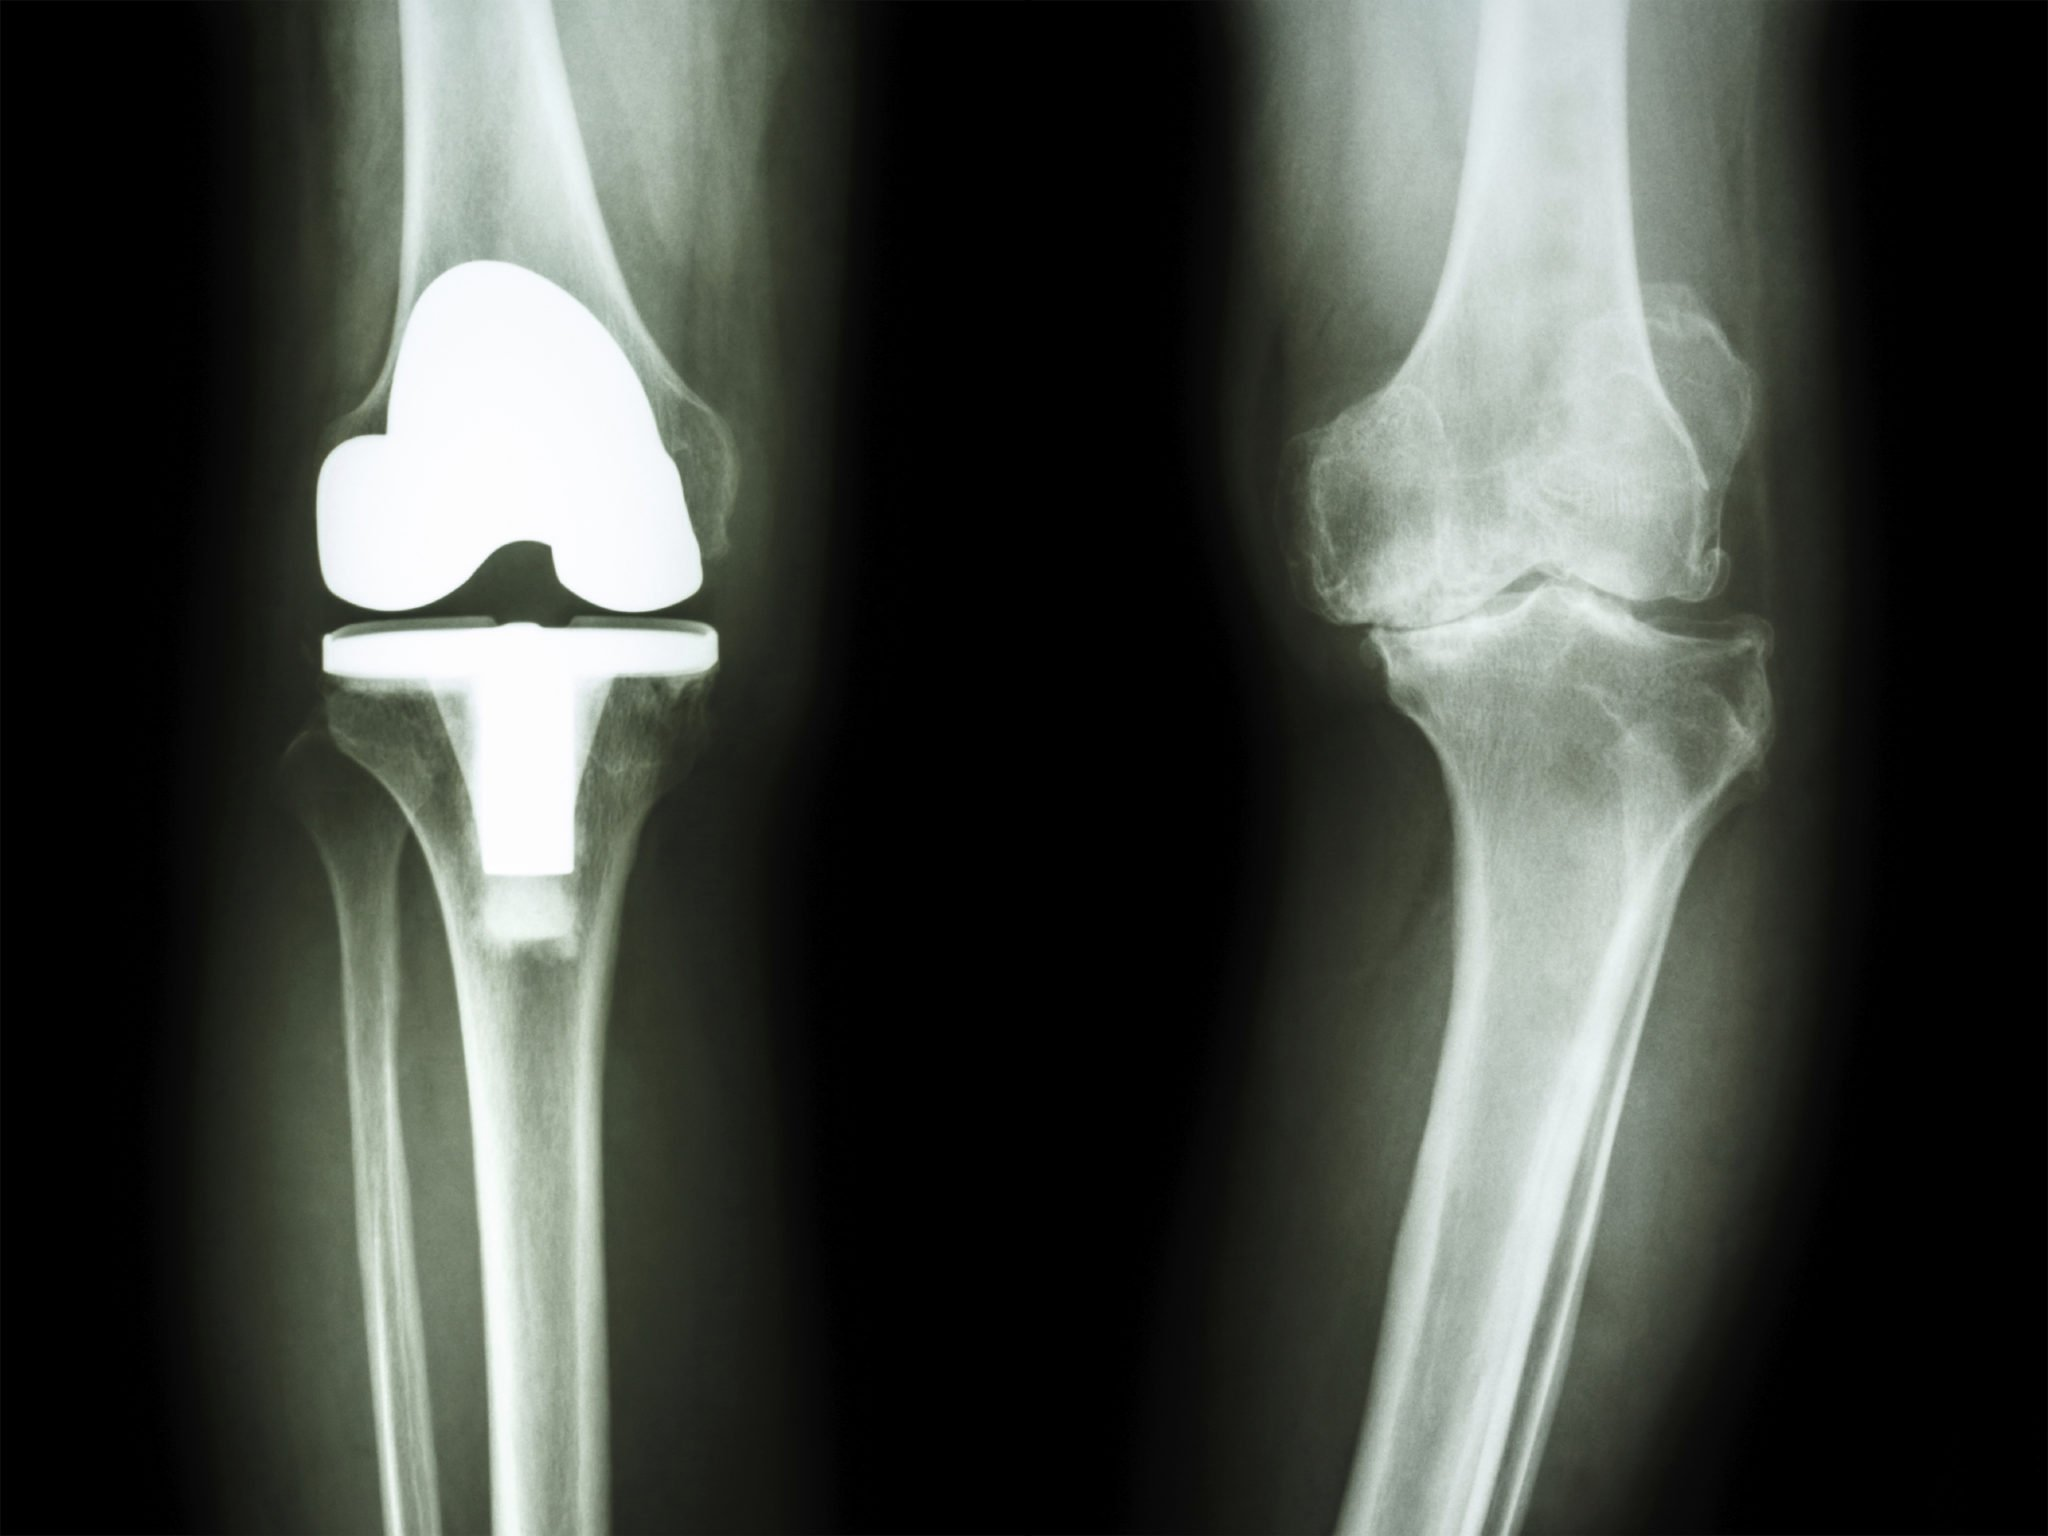 total joint replacement